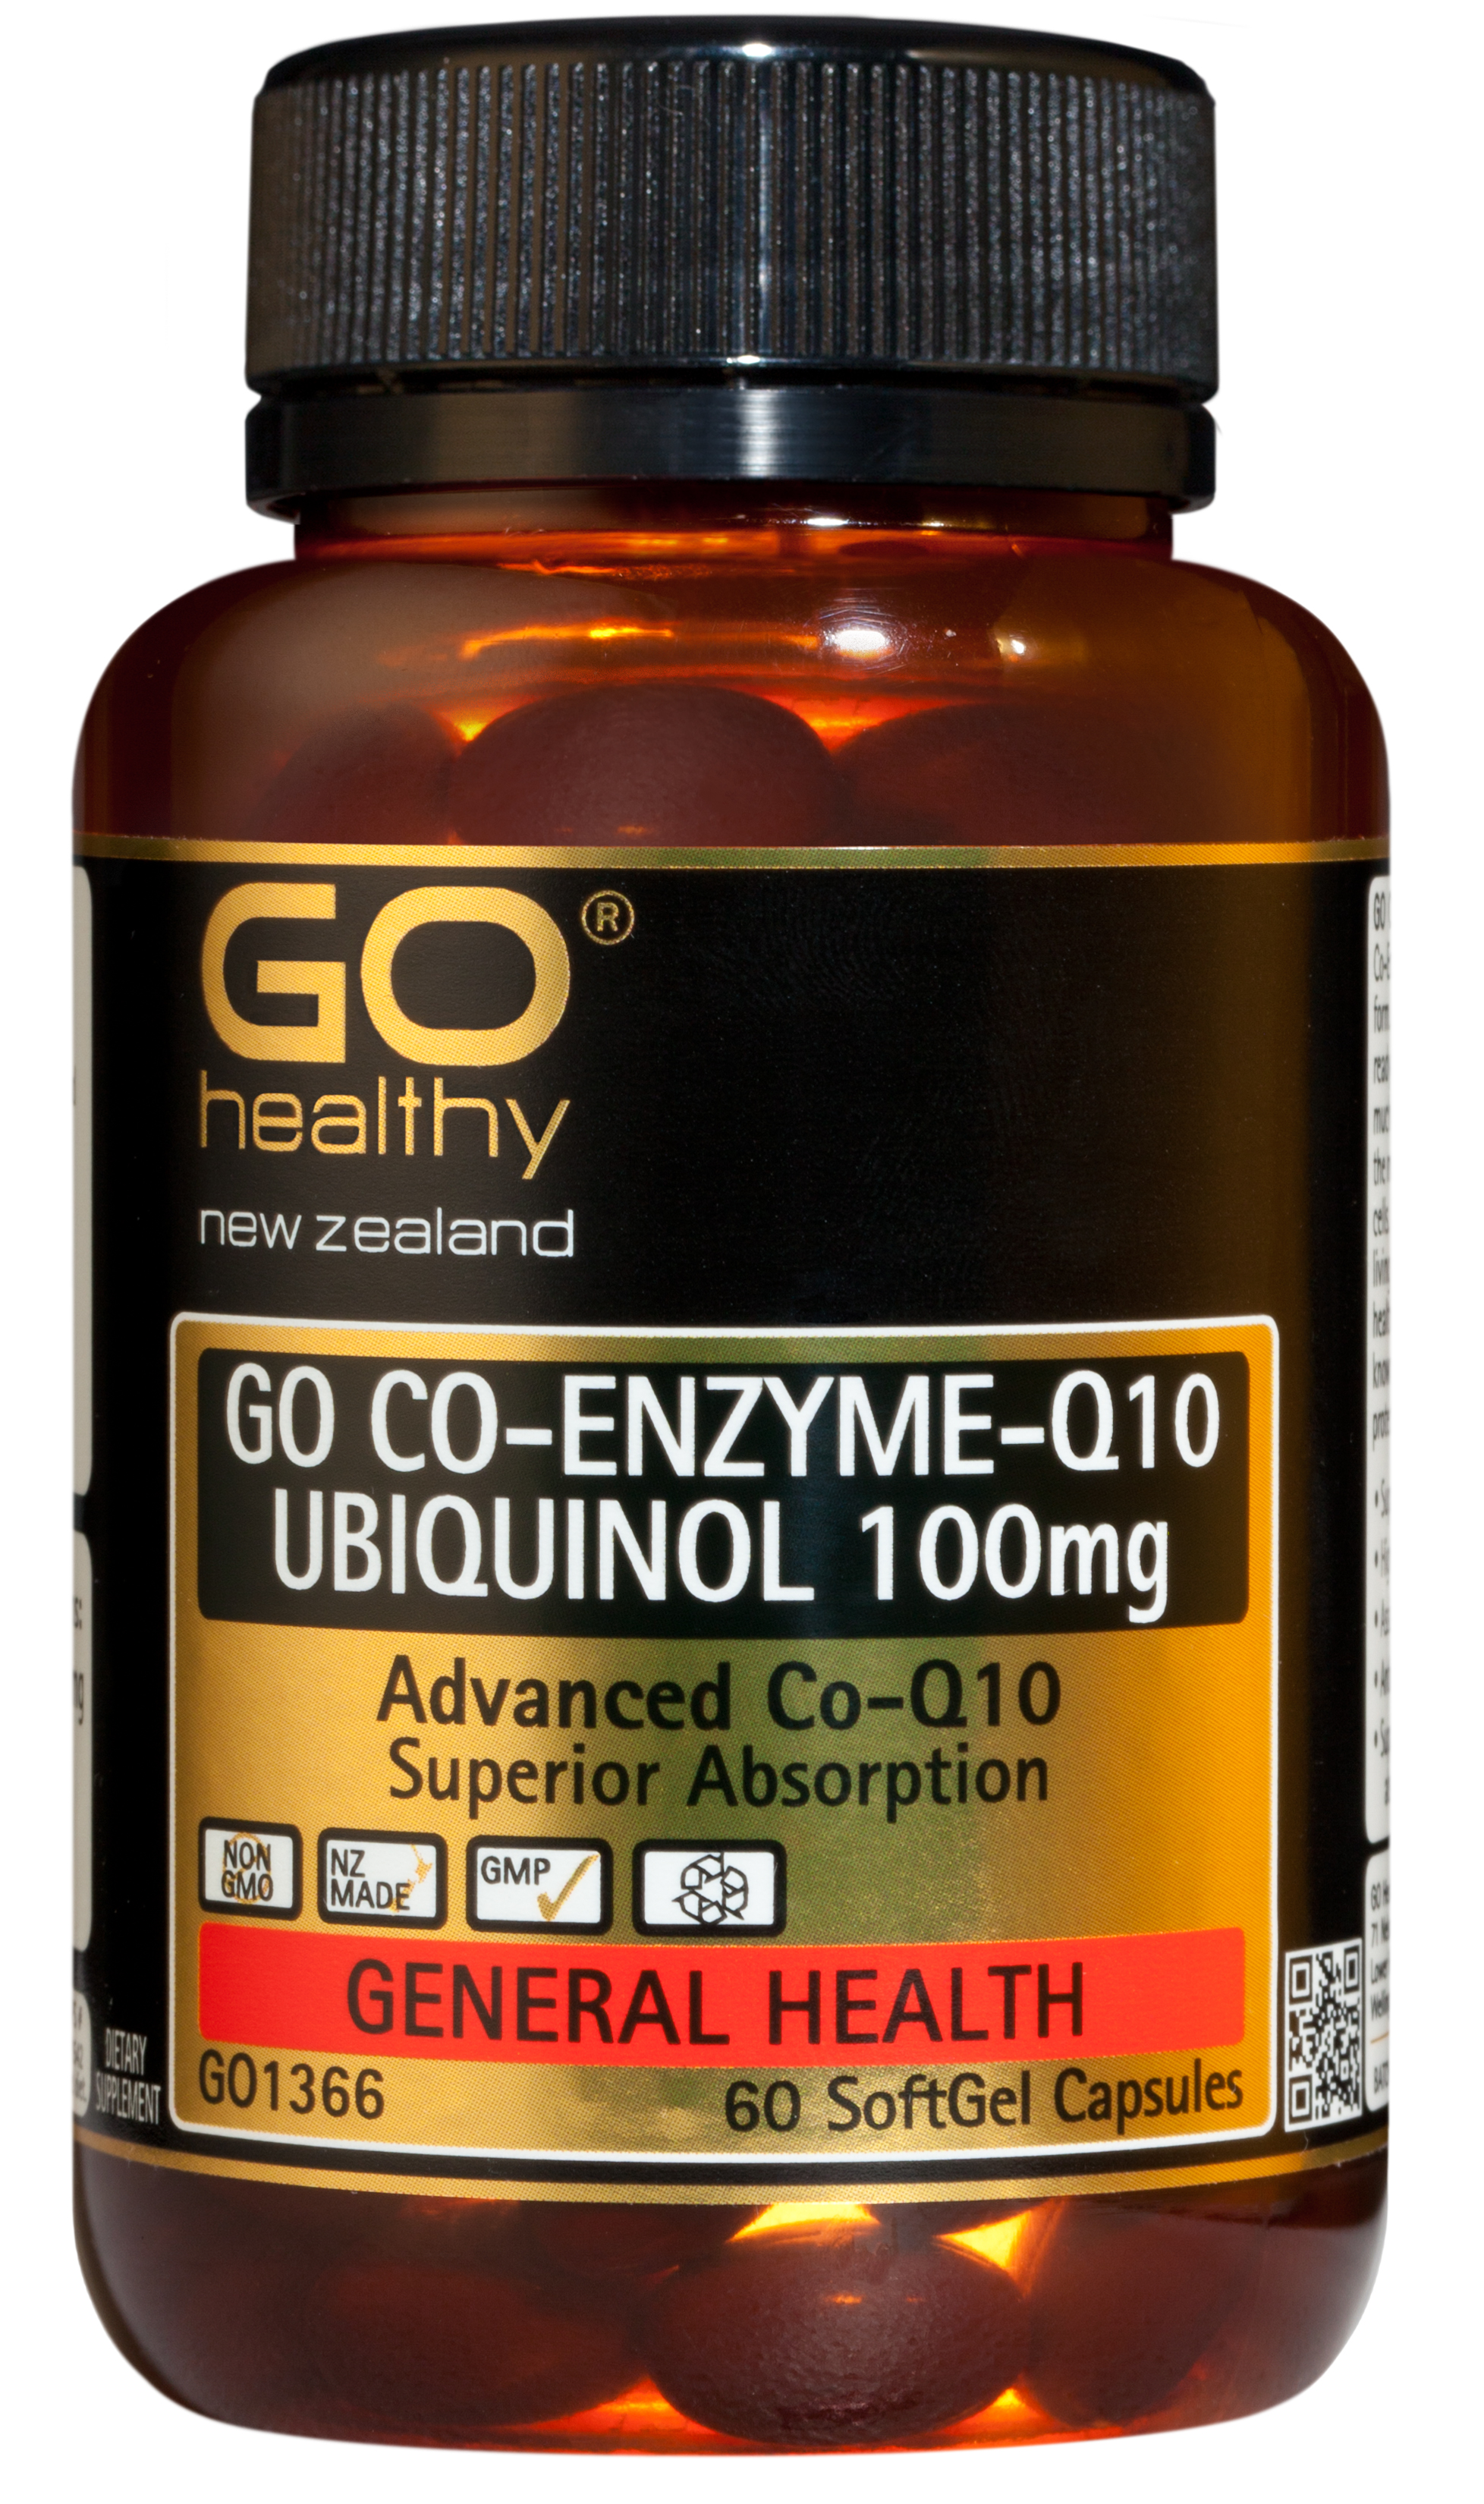 Go Healthy Co-Enzyme Q10 Ubiquinol 100mg 60 Capsules